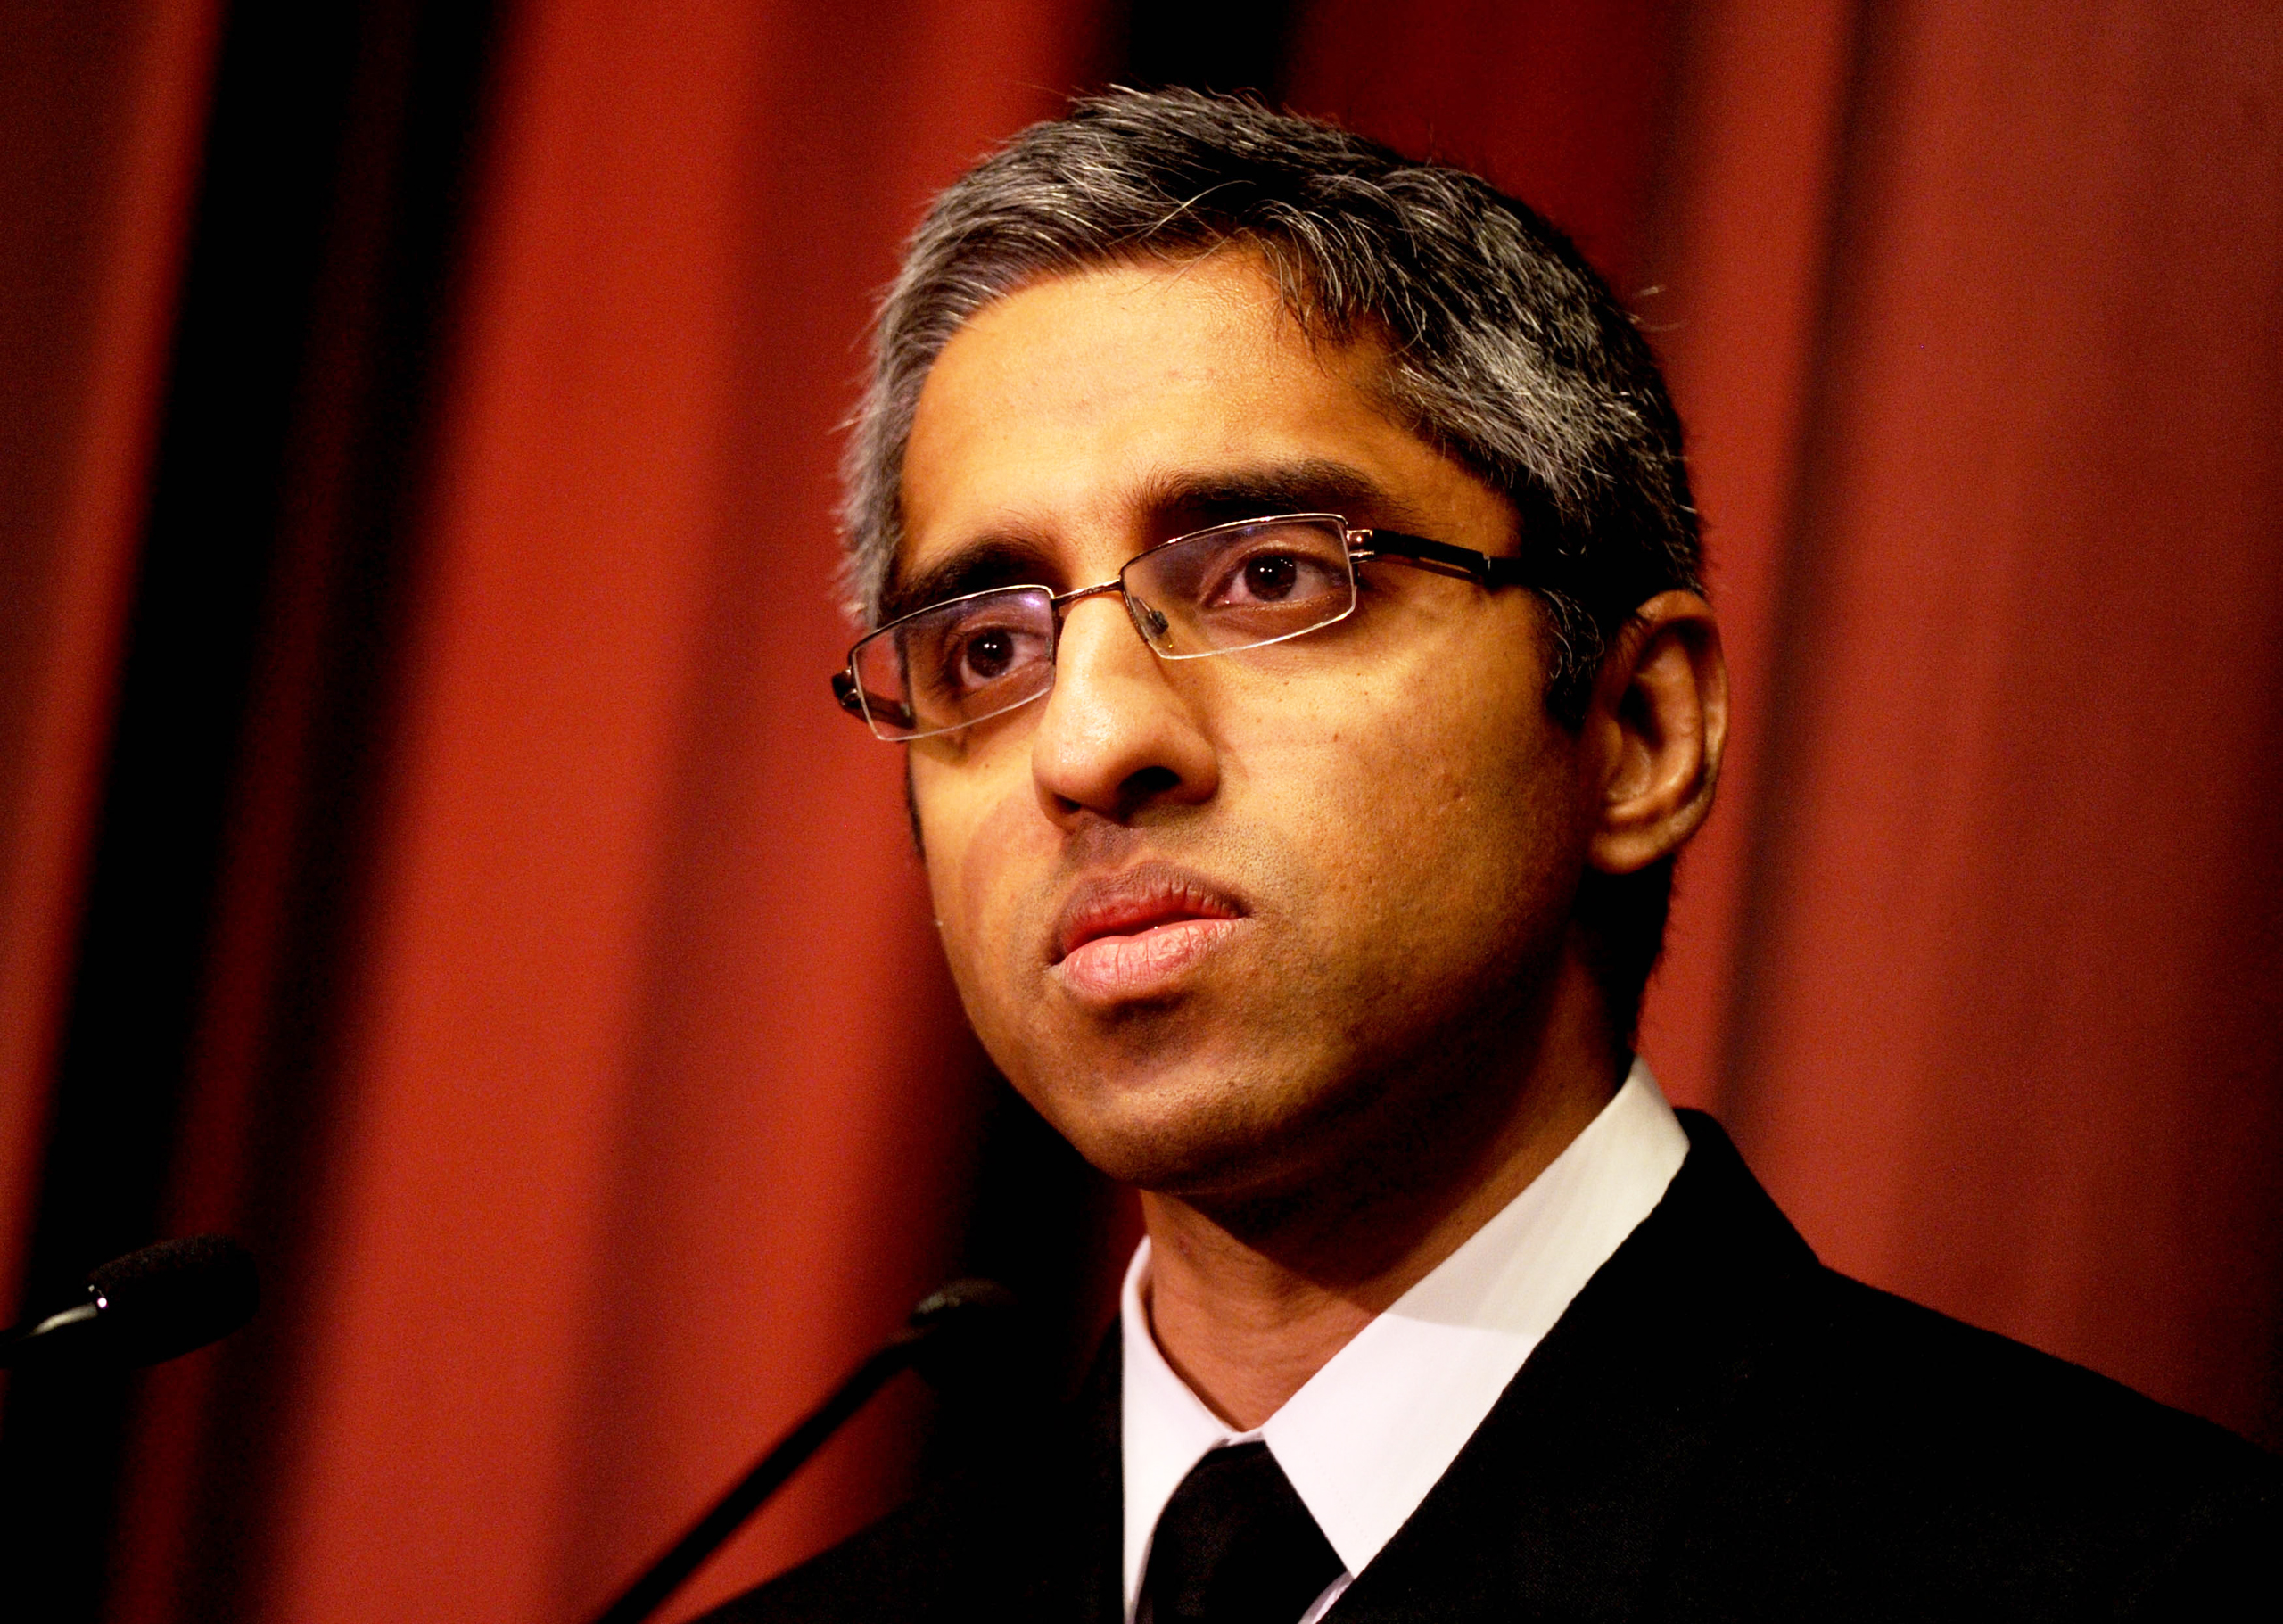 U.S. Surgeon General Dr. Vivek Murthy at The National Action Network Conference on April 14, 2016.